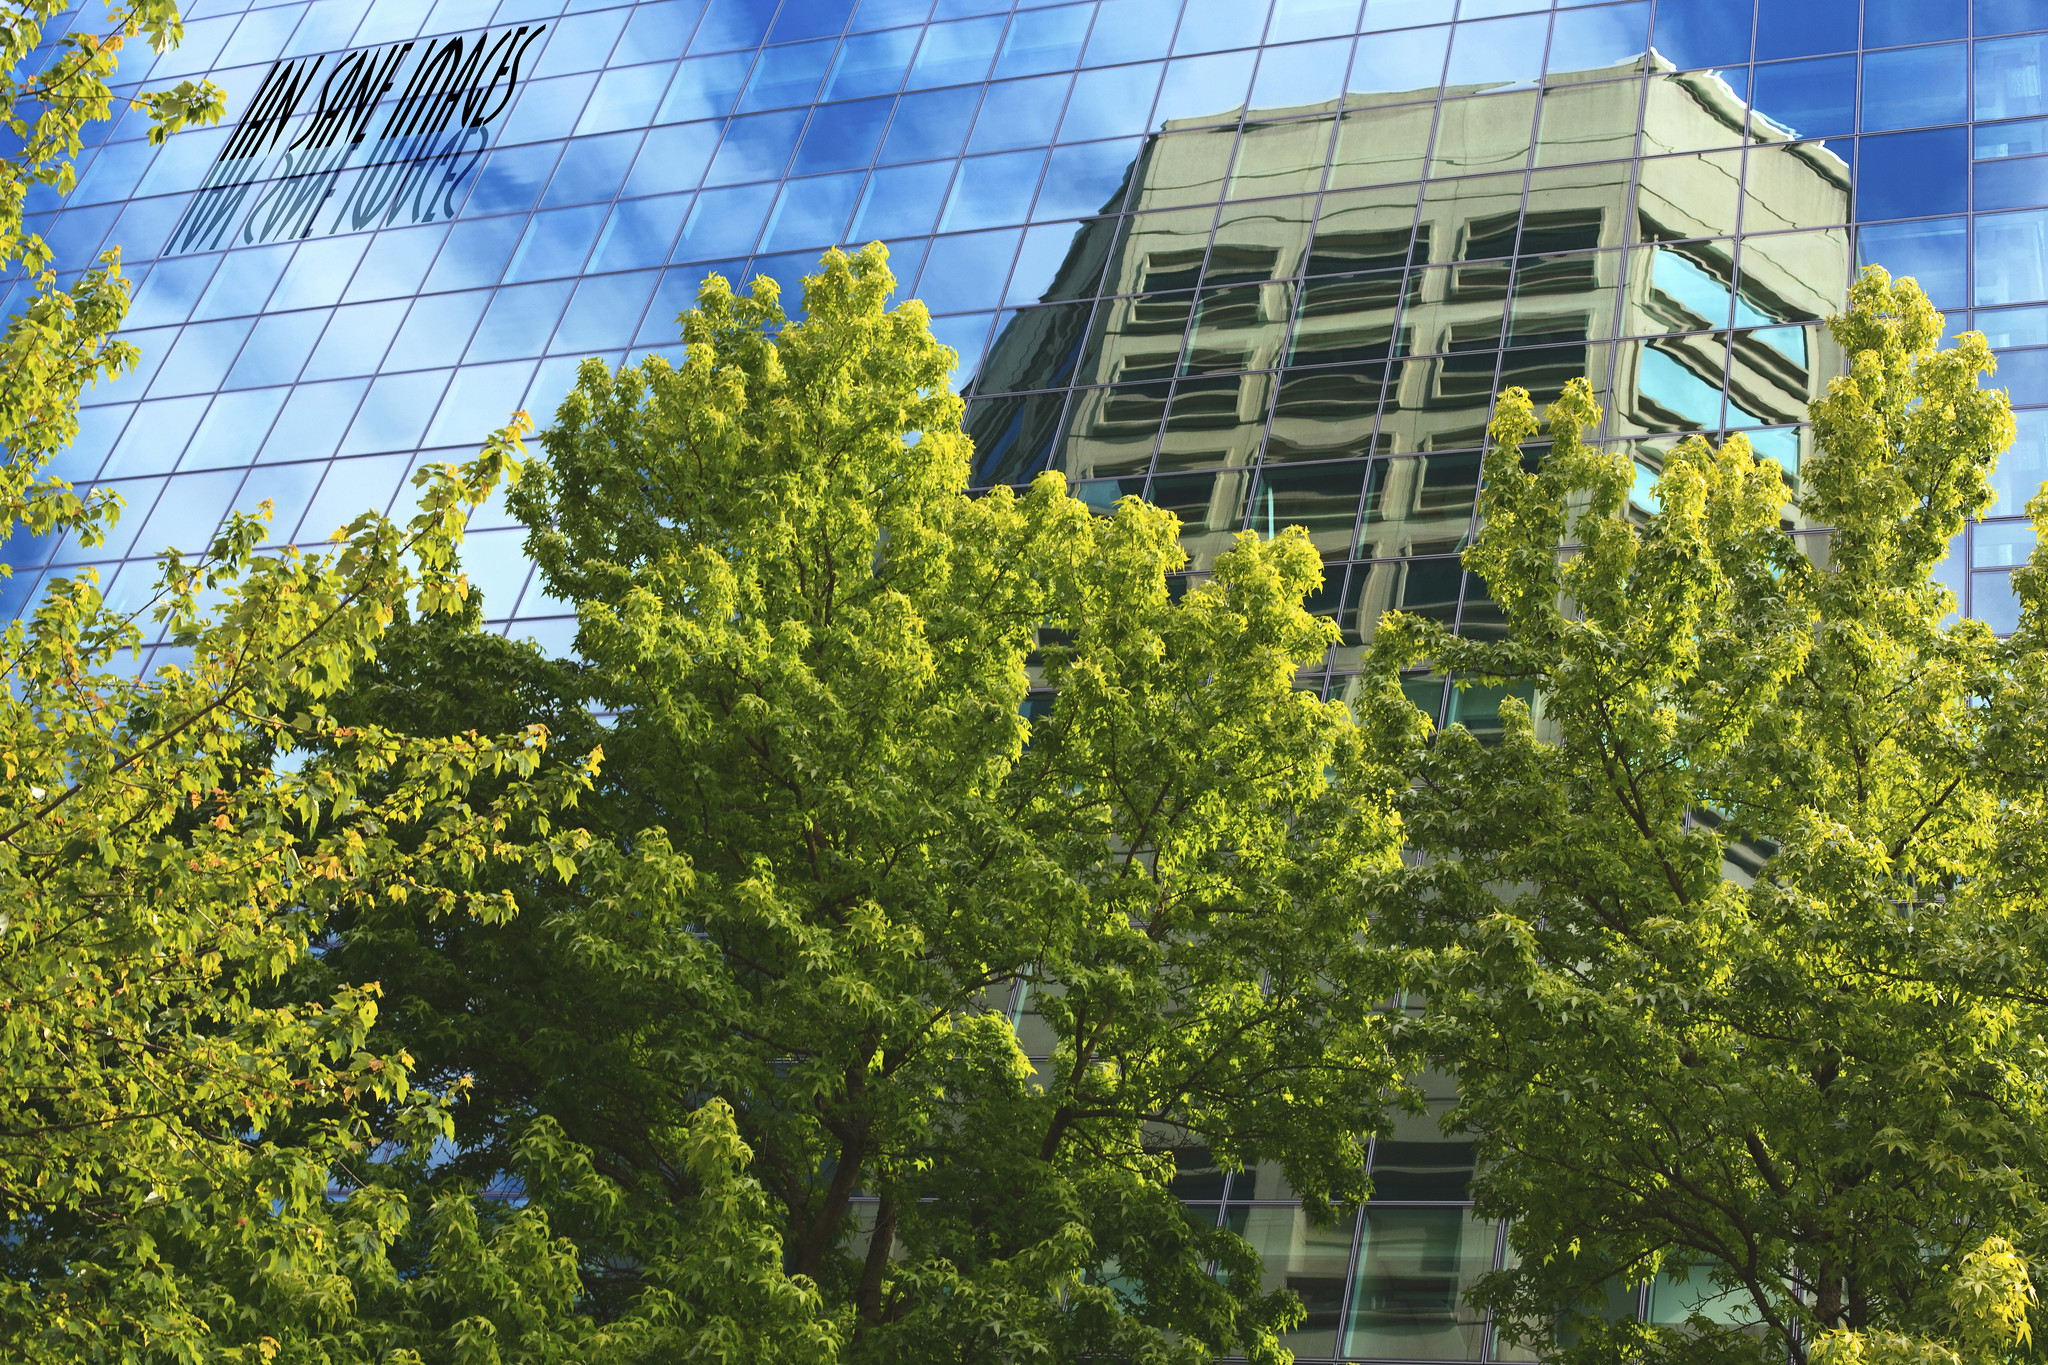 Bright green trees grow alongside a building with many mirrored windows, which are reflecting a blue sky with white, puffy clouds.